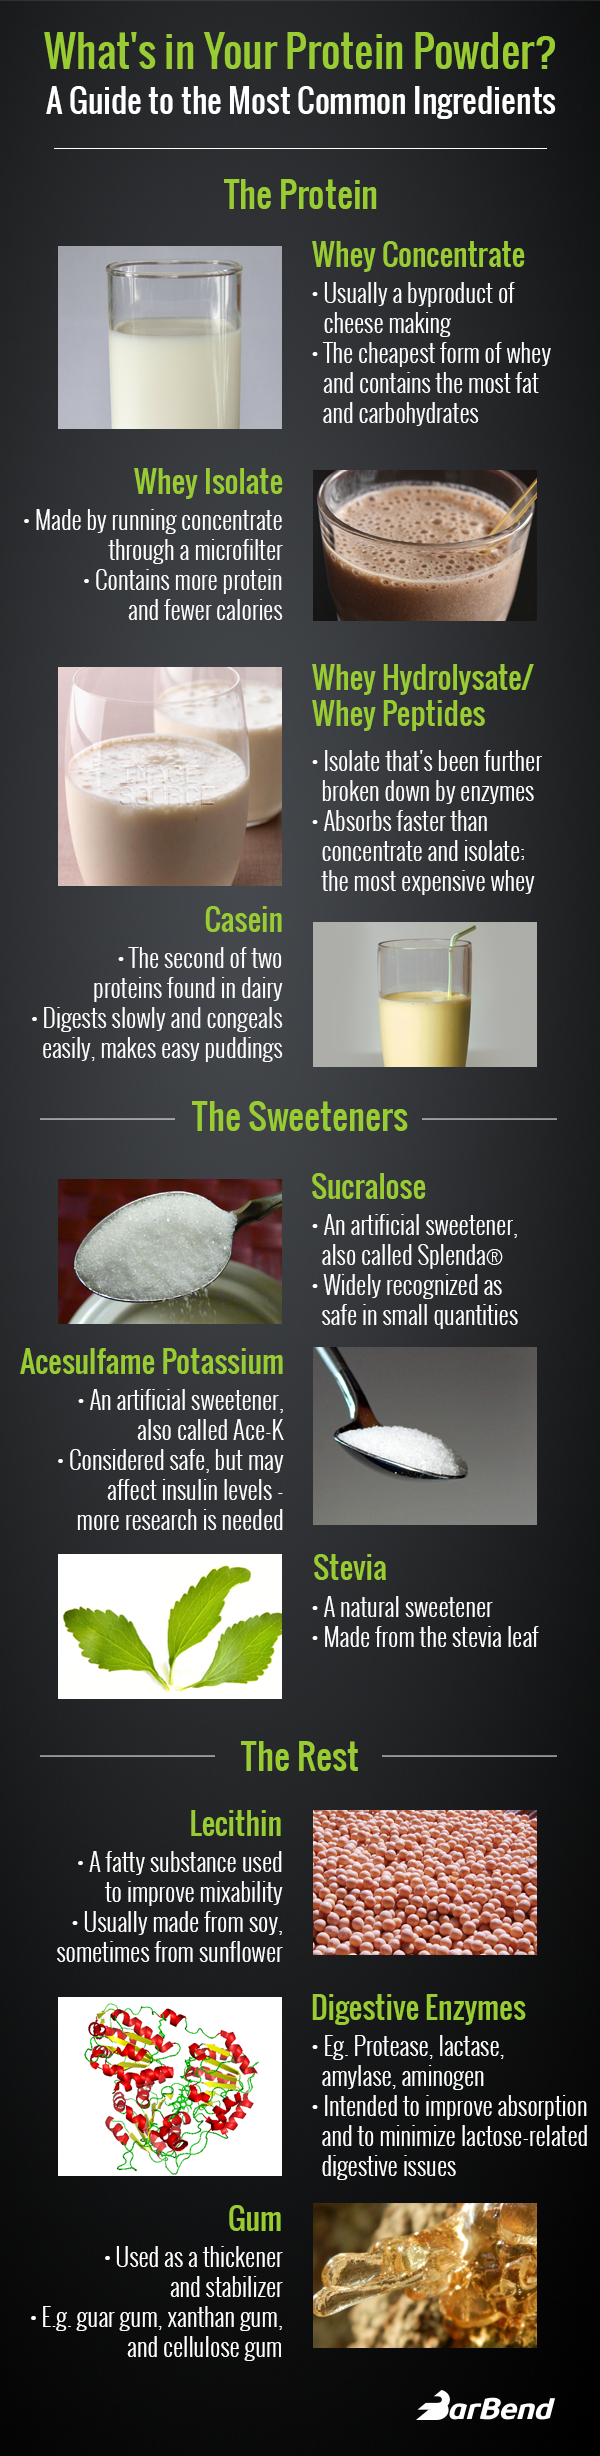 Protein Powder Infographic amino acids